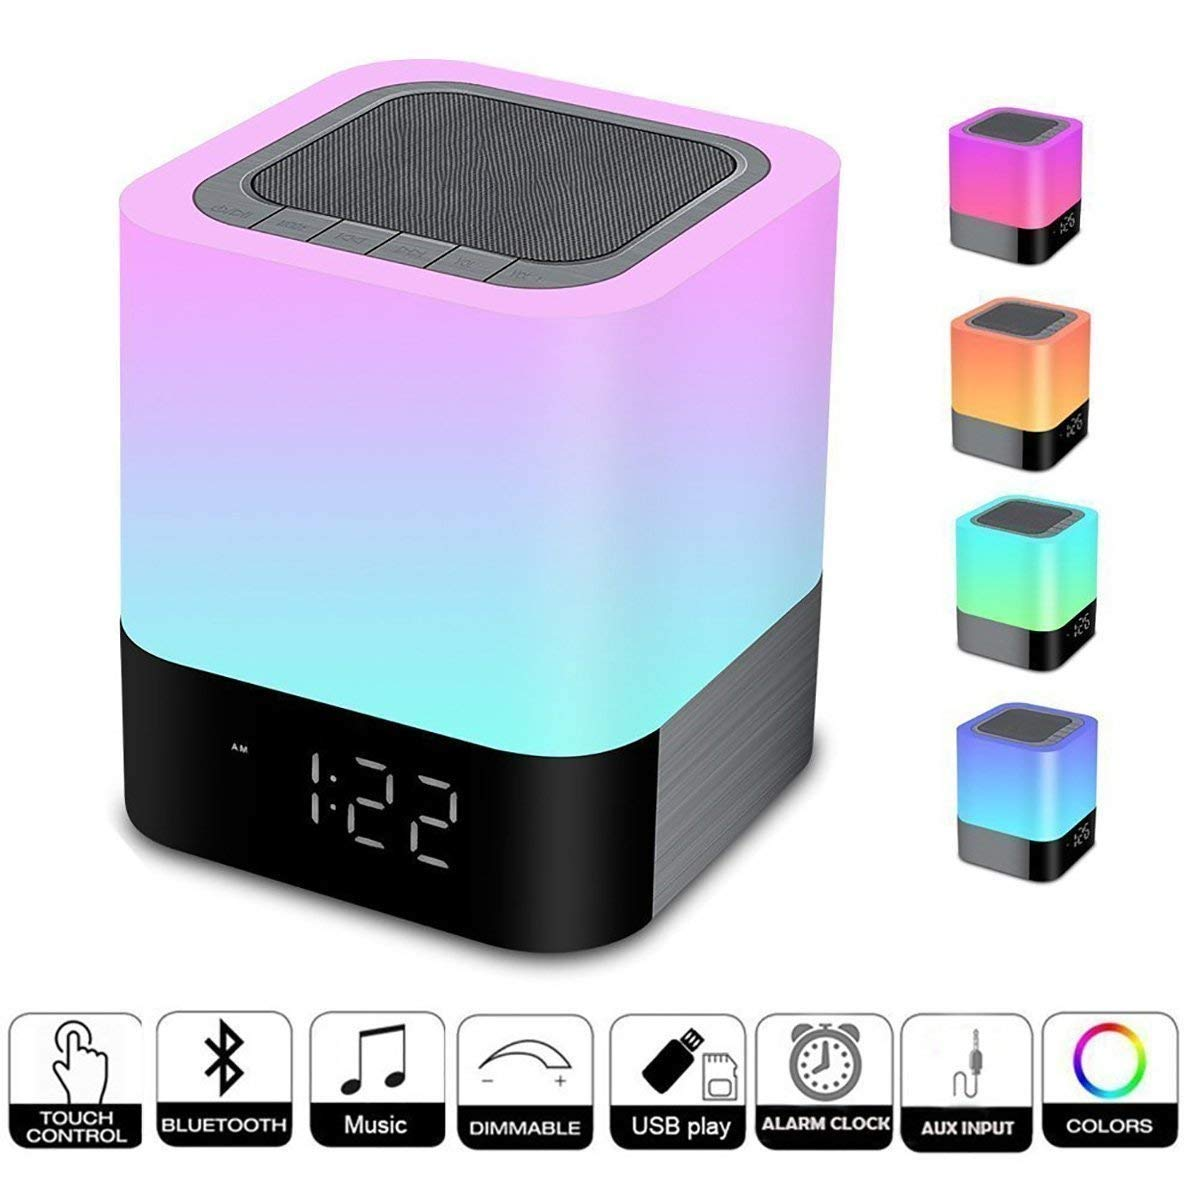 Homcasito Night Light Bluetooth Speaker,Bedside Lamps Touch Sensor Dimmable Warm White Light Color Changing Alarm Clock Wireless Music Player Best for Kids,Party,Bedroom,Camping Gift